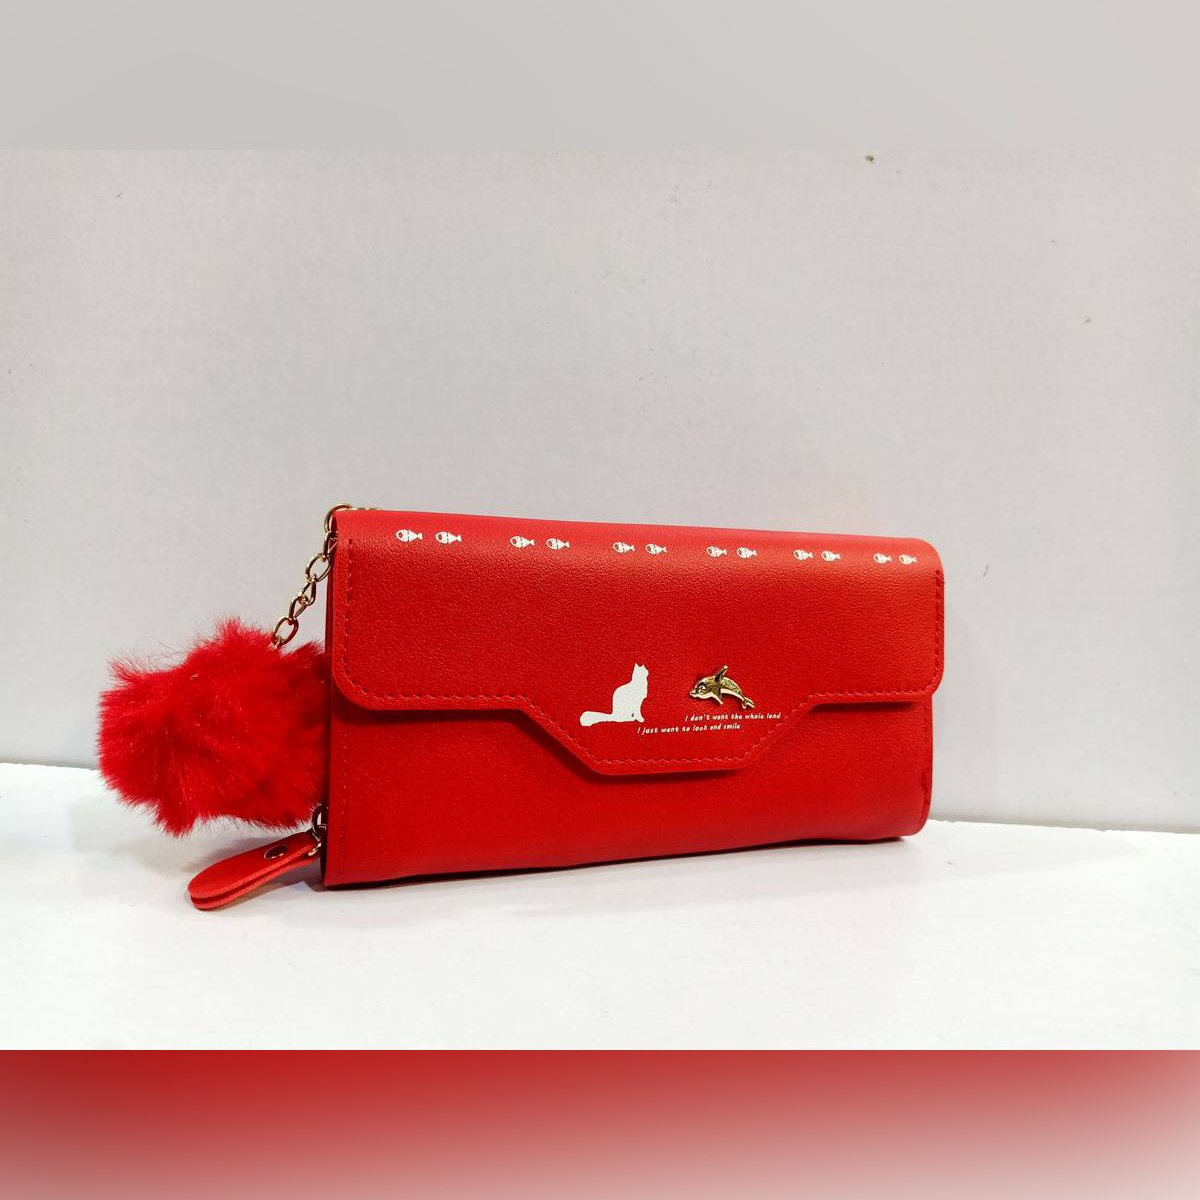 New Arrival January 2020 Hand Clutch,Latest Stylish wallet for ladies and girls